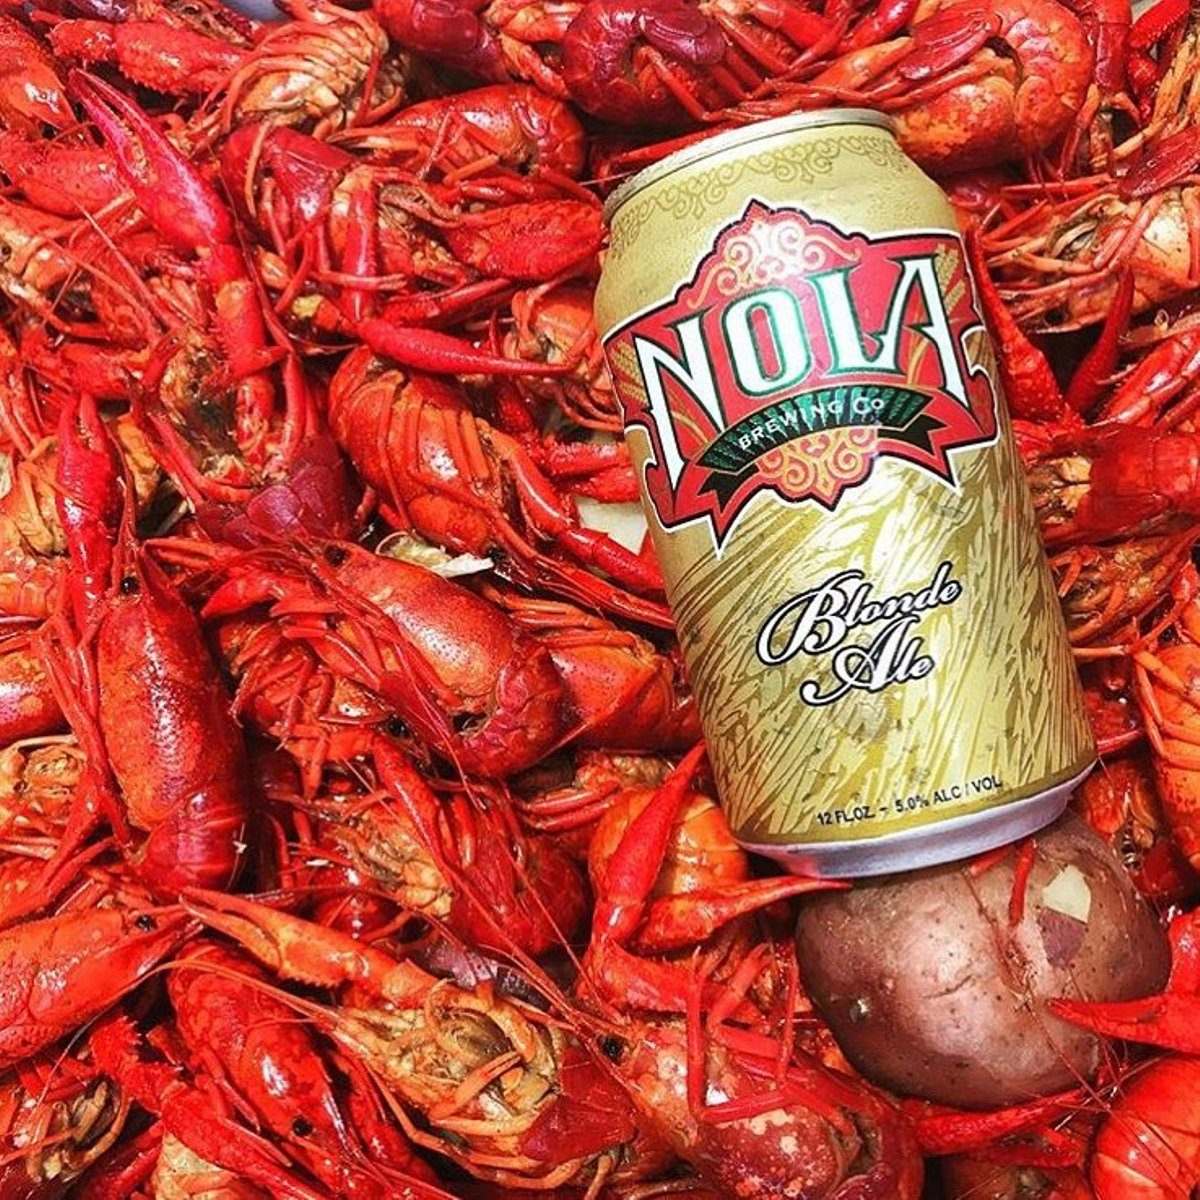 Crawfish background with a can of Nola